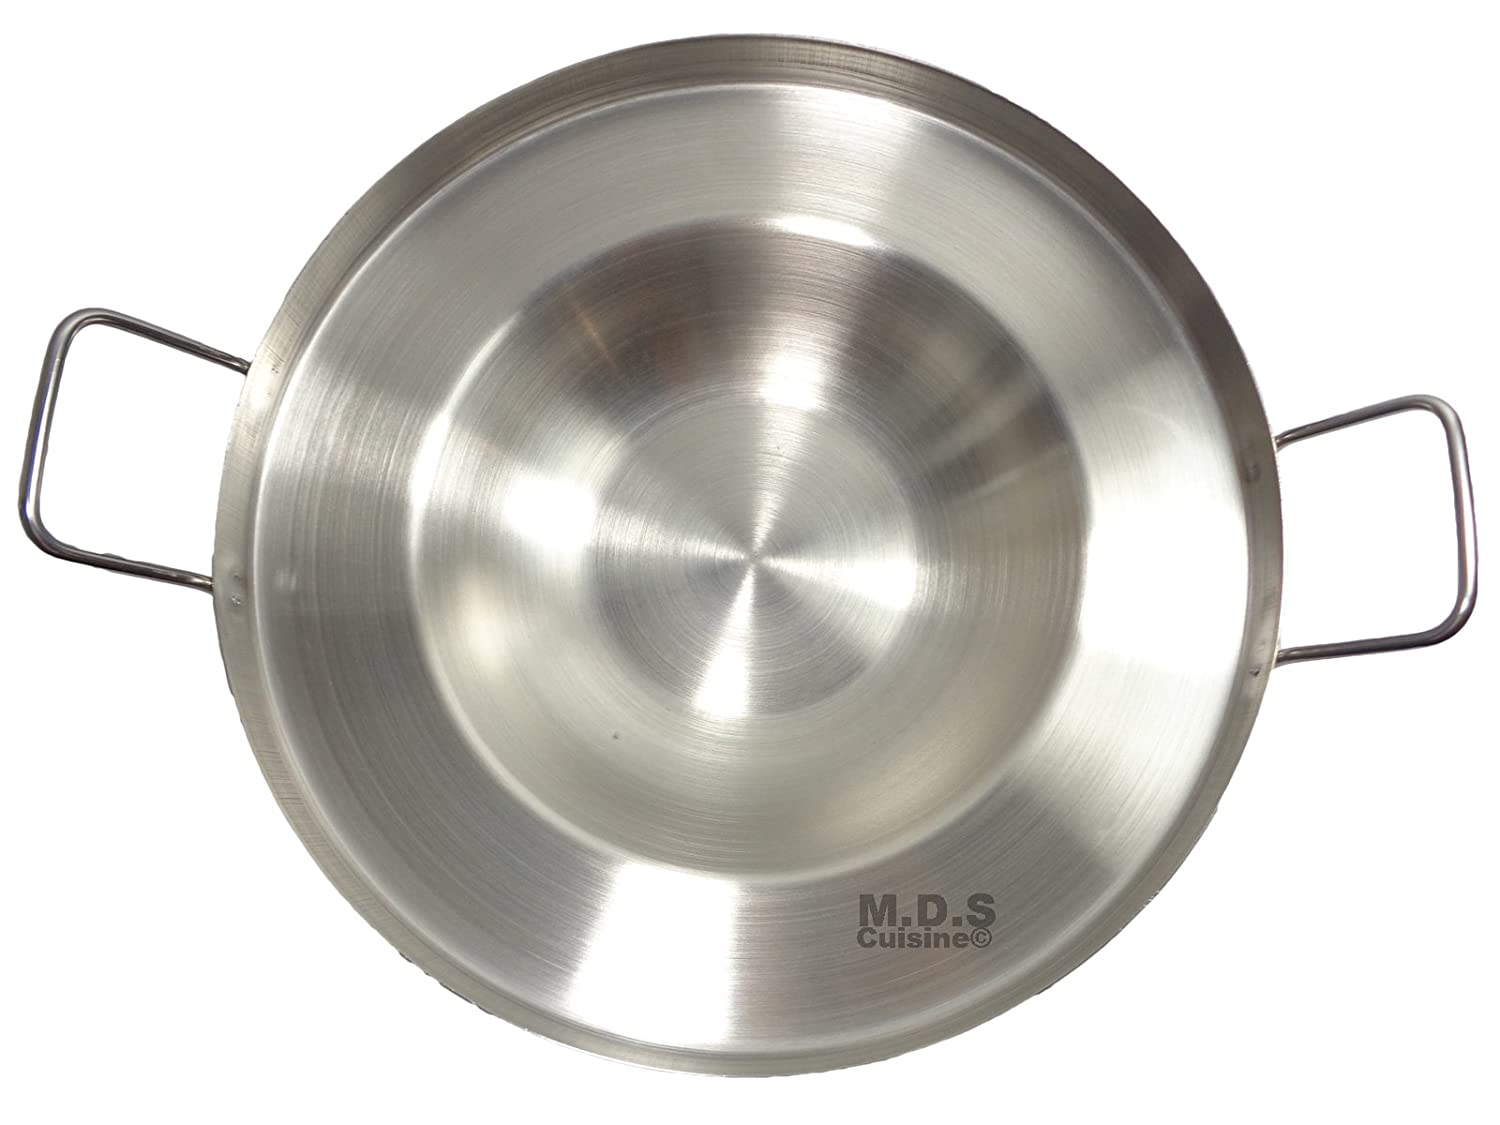 16 Inch Comal Stainless Steel Concave Frying Gas Stove Outdoors Heavy Duty Acero M.D.S Cuisine Cookwares